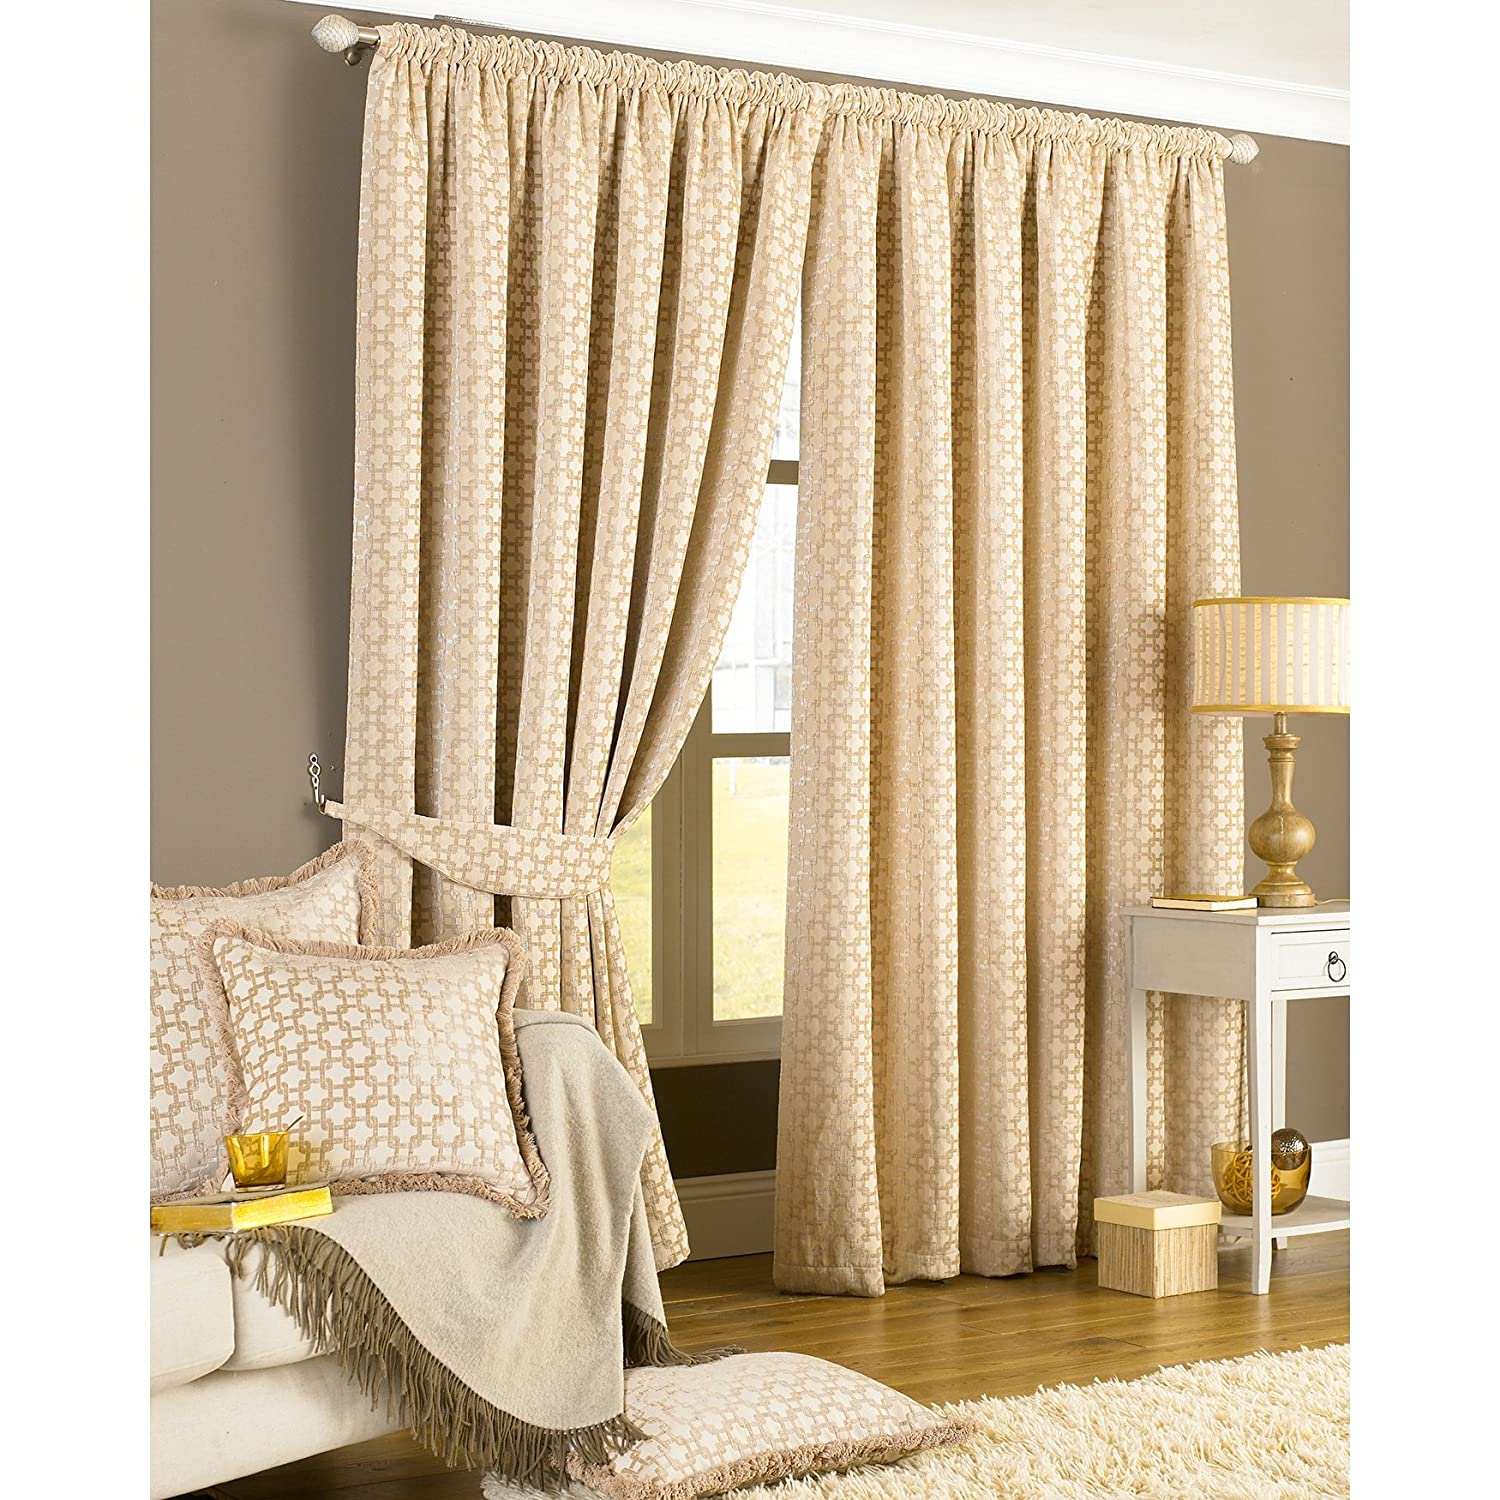 Charming Paoletti Belmont Chenille Jacquard Pencil Pleat Curtains, Silver, 90x90  Inch: Amazon.co.uk: Kitchen U0026 Home